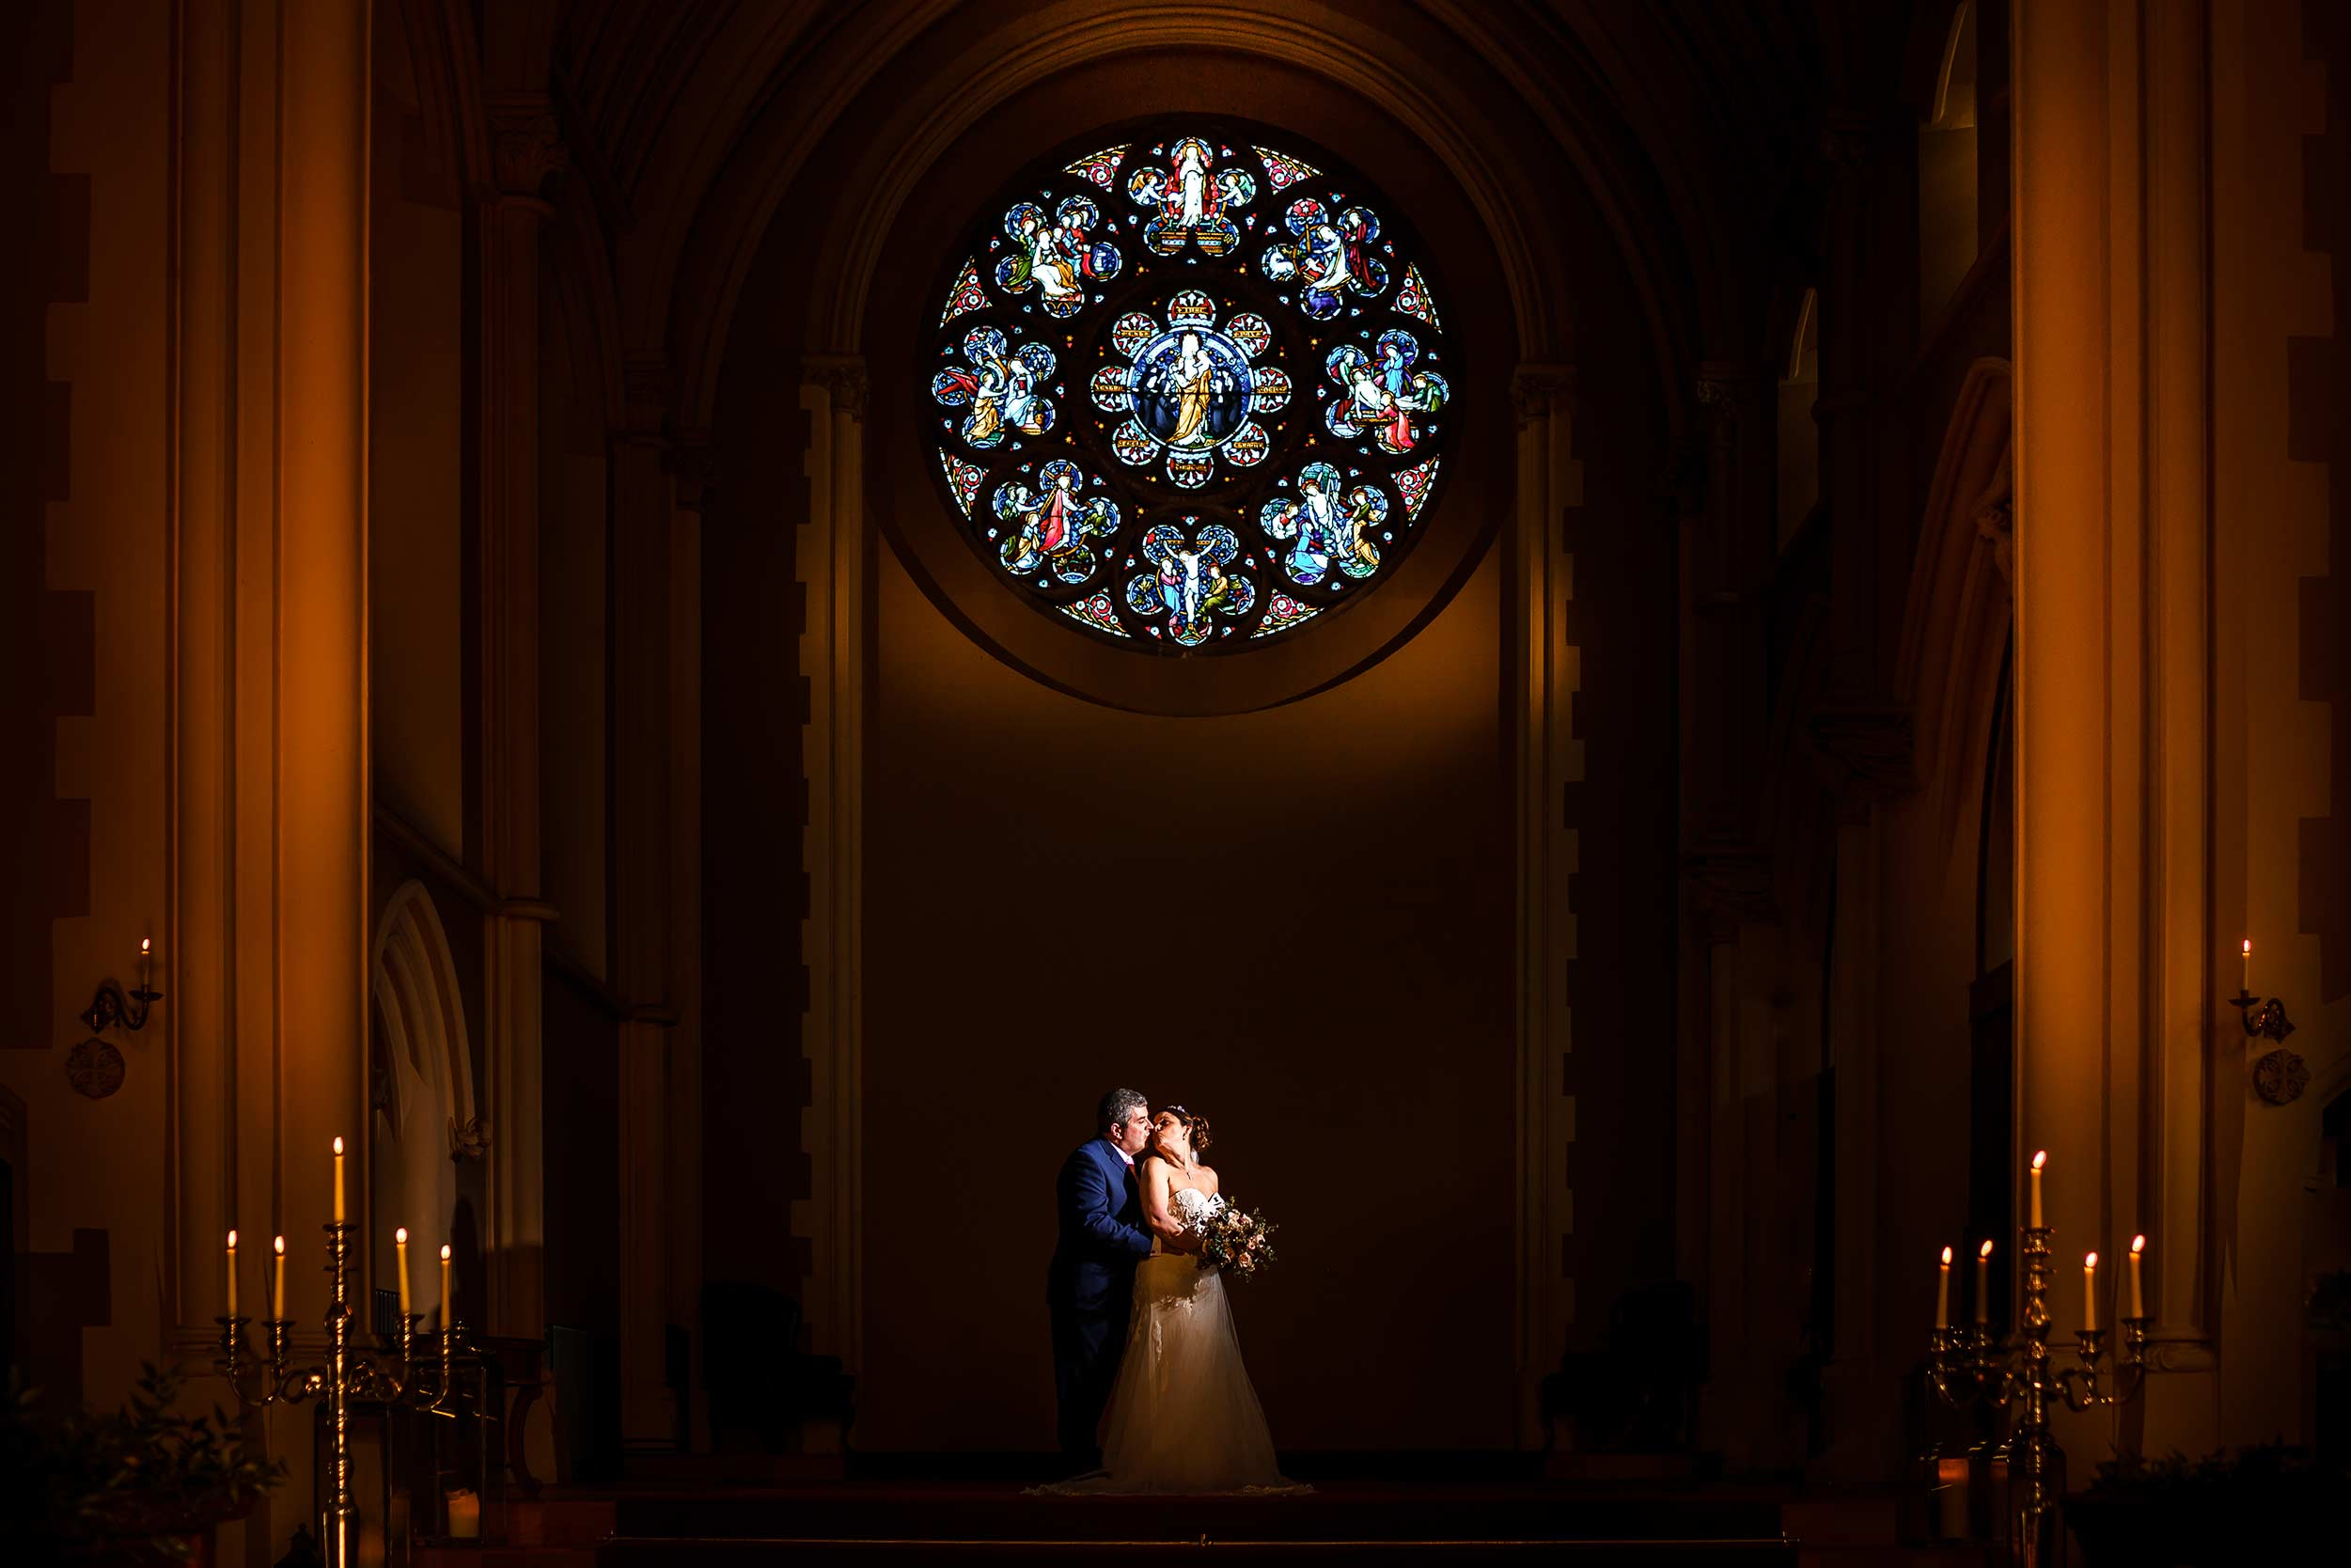 Stanbrook Abbey, Stanbrook Abbey Wedding Photographer, Wedding Photography, Worcestershire Wedding Photographer, Stanbrook, Abbey, Worcestershire